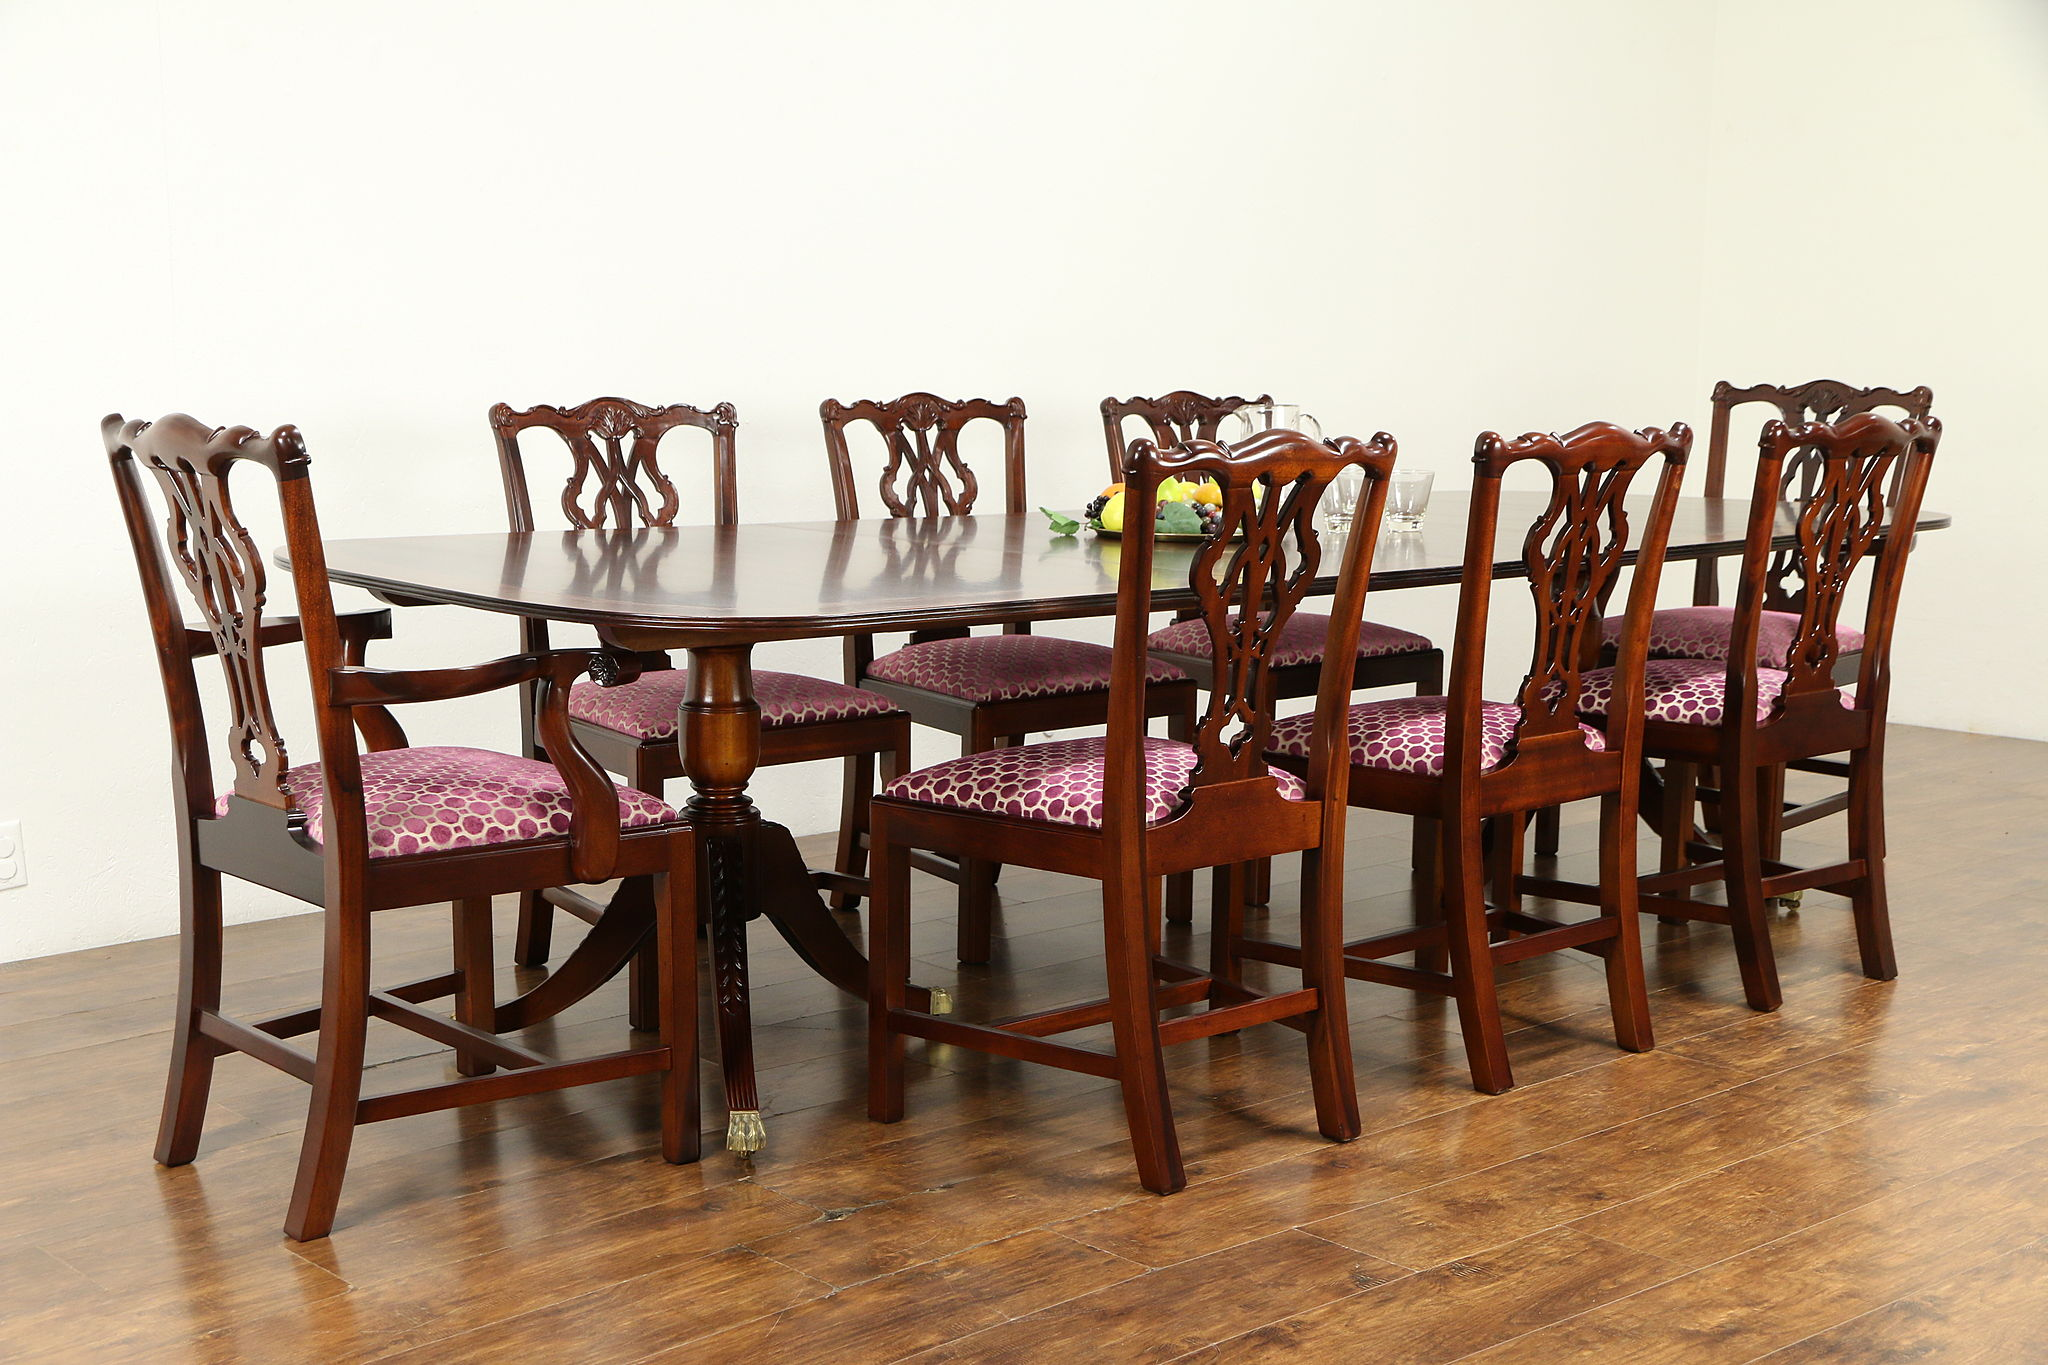 Sold Georgian Design Vintage Dining Set Banded 10 Table 8 Chairs 32071 Harp Gallery Antiques Furniture